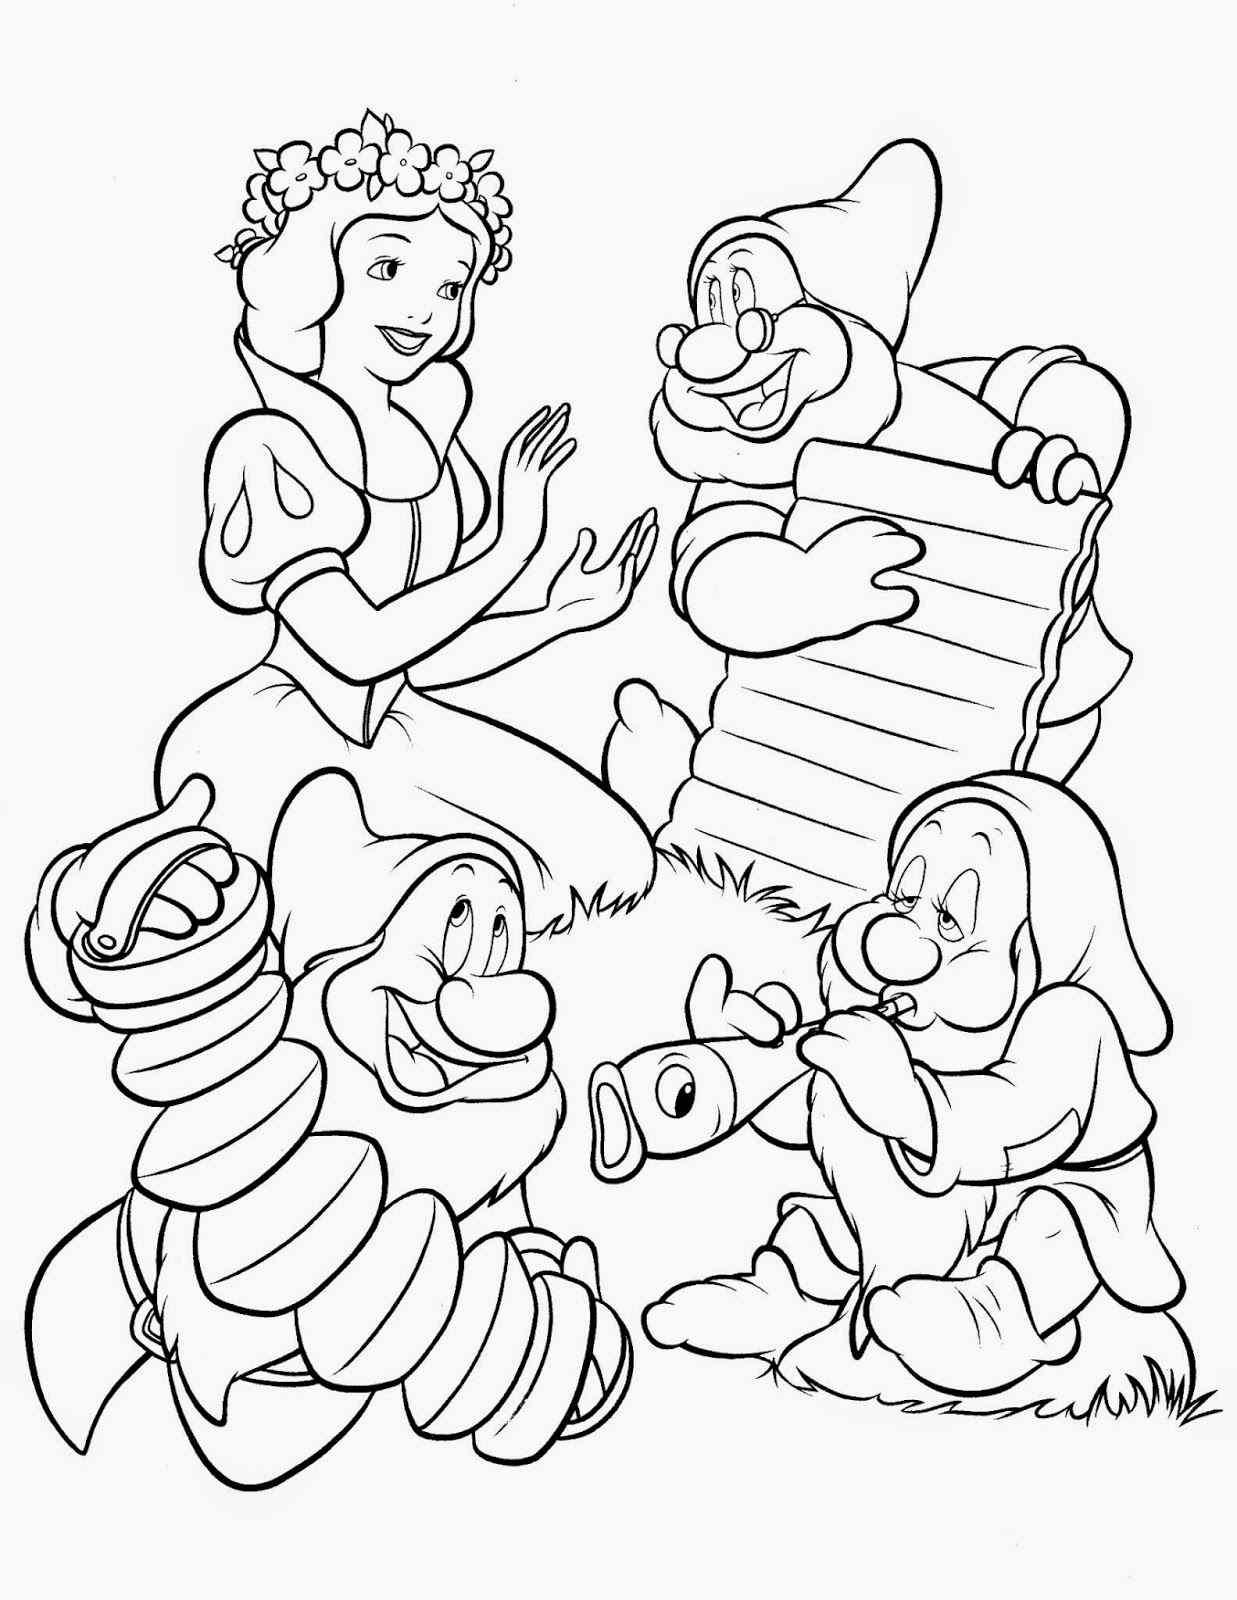 colored pages the hero of color city coloring book pages colored